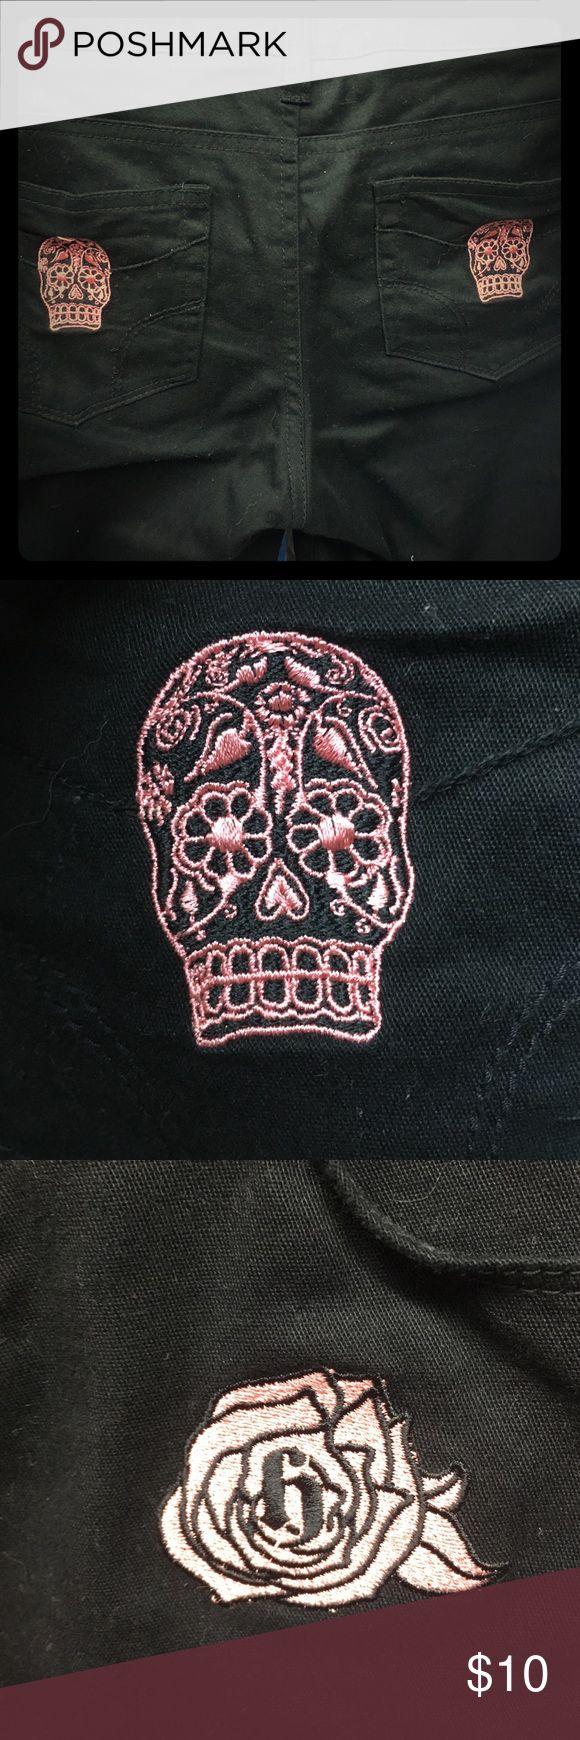 💀💗 Dickies sugar skull capris Black capris with small pink sugar skulls on the back pockets. Hardnox brand which no longer exists. I LOVE these pants but I bought them at a tattoo convention and wasn't able to try them on so they are too small and never worn. PERFECT CONDITION🎈MUST SELL BY FRIDAY OR IT WILL BE DONATED bundle 2 or more for 30% Dickies Jeans Ankle & Cropped